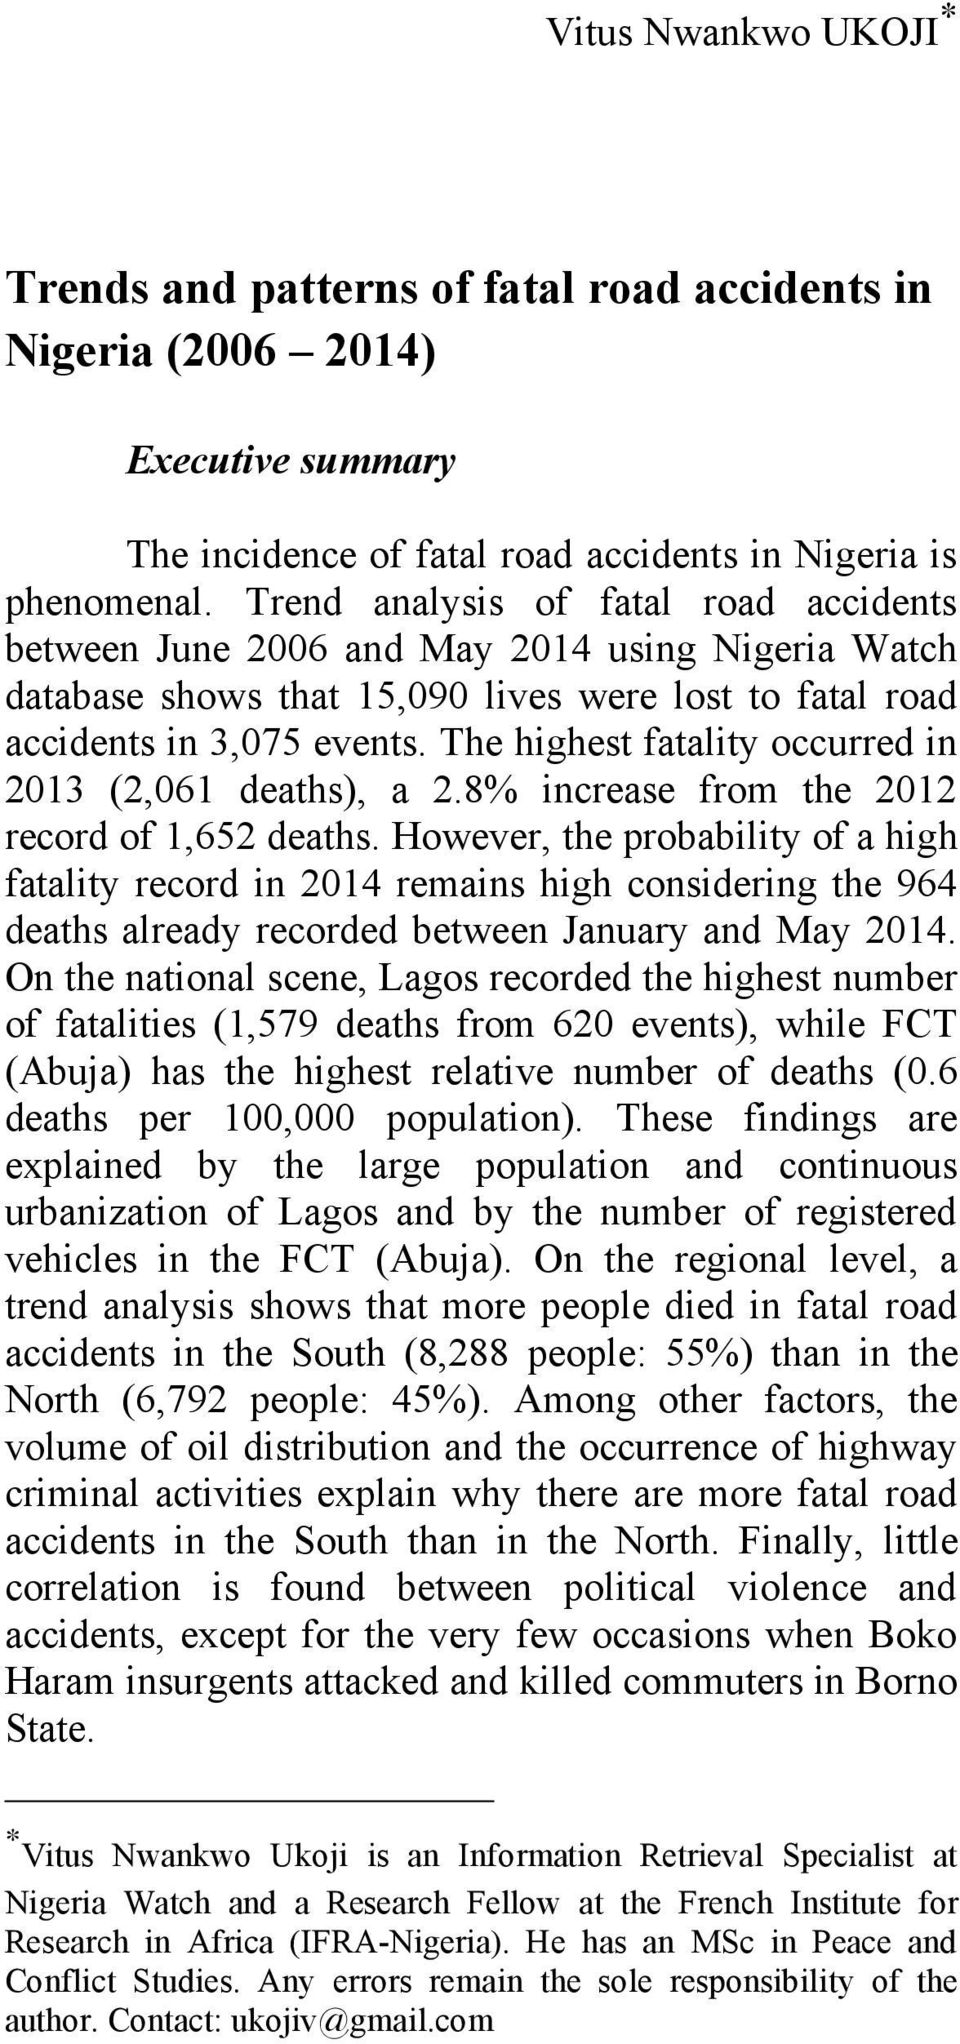 The highest fatality occurred in 2013 (2,061 deaths), a 2.8% increase from the 2012 record of 1,652 deaths.